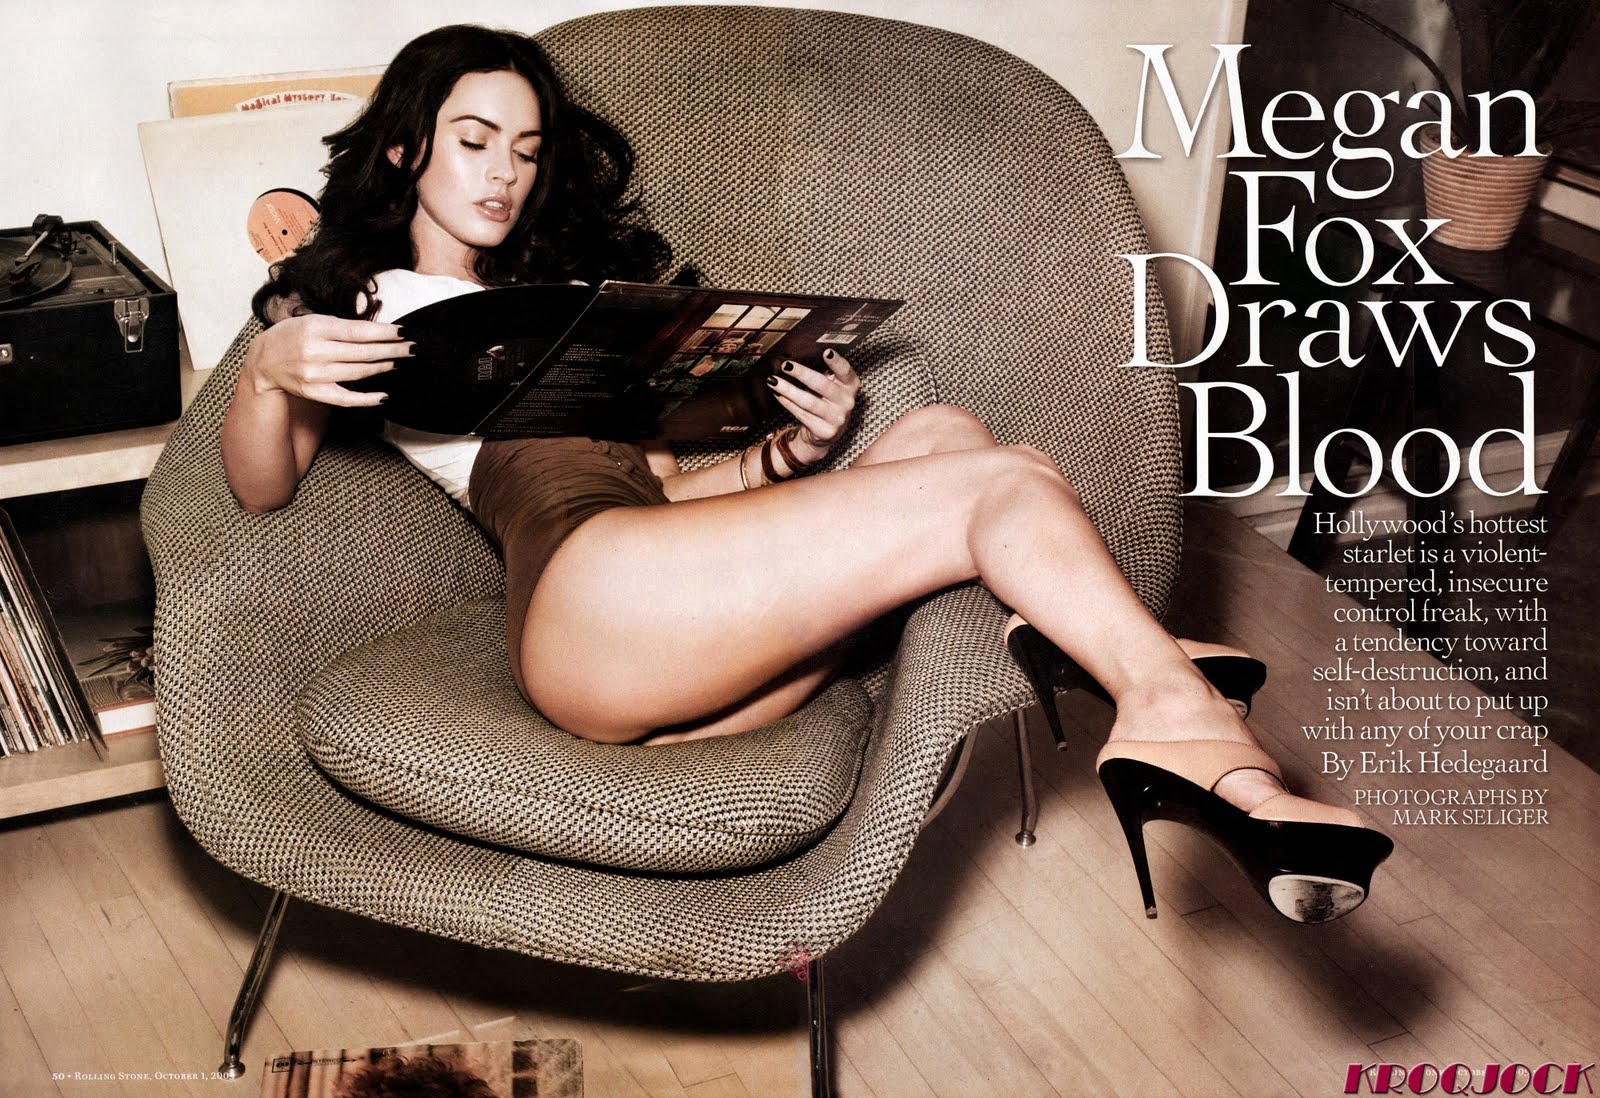 http://2.bp.blogspot.com/_H-dSlgO5IMc/SvIsfiD_dAI/AAAAAAAAAuc/GJu4raKqznI/s1600/Megan-Fox_NET_ROLLING_STONE_October_1_2009_Issue_1088_Scanned_by_KROQJOCK_UHQ3.jpg